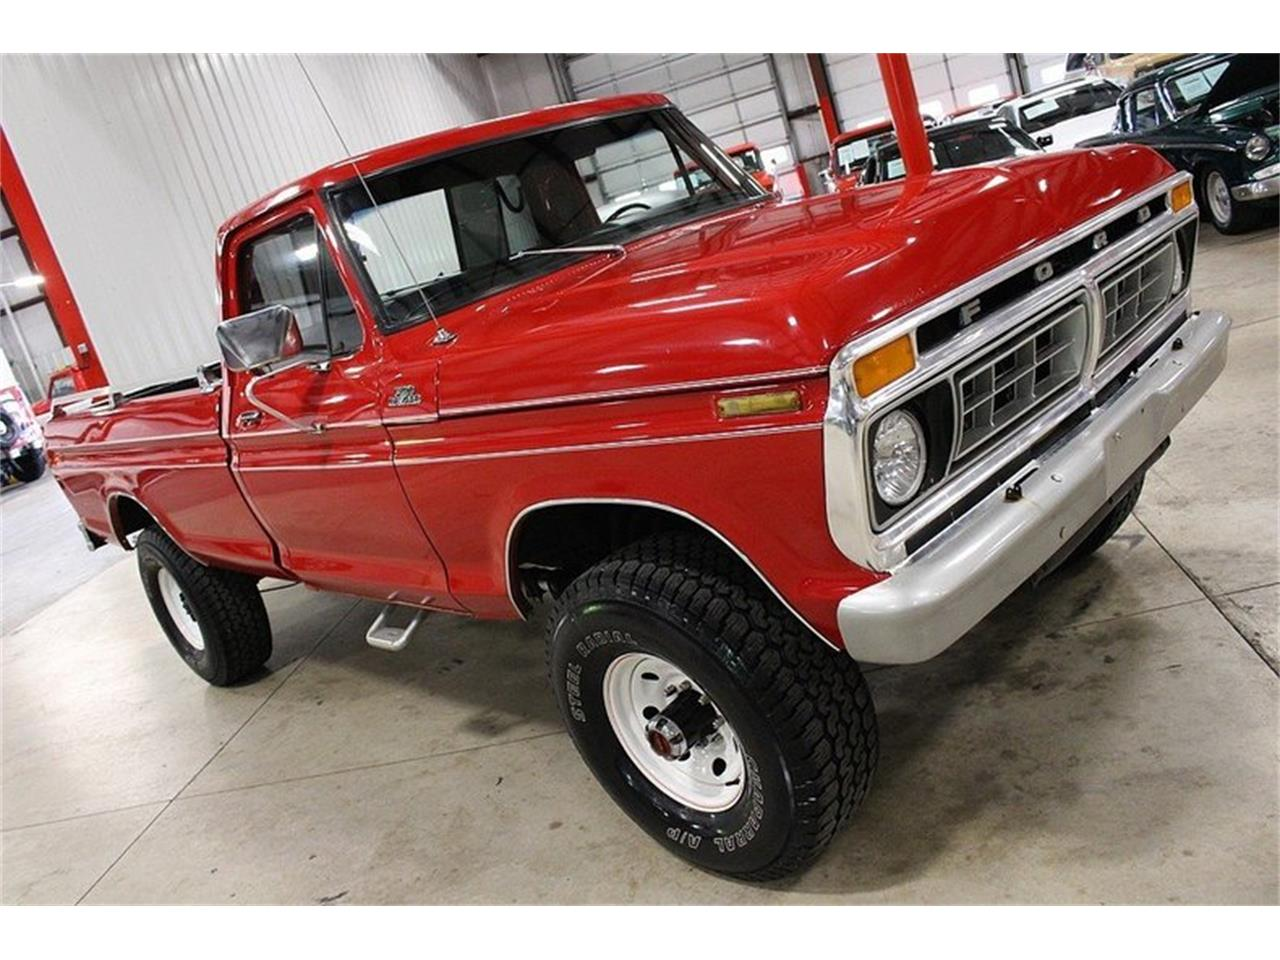 Ford F250 8 Foot Bed For Sale >> 1977 Ford F250 for Sale   ClassicCars.com   CC-989590